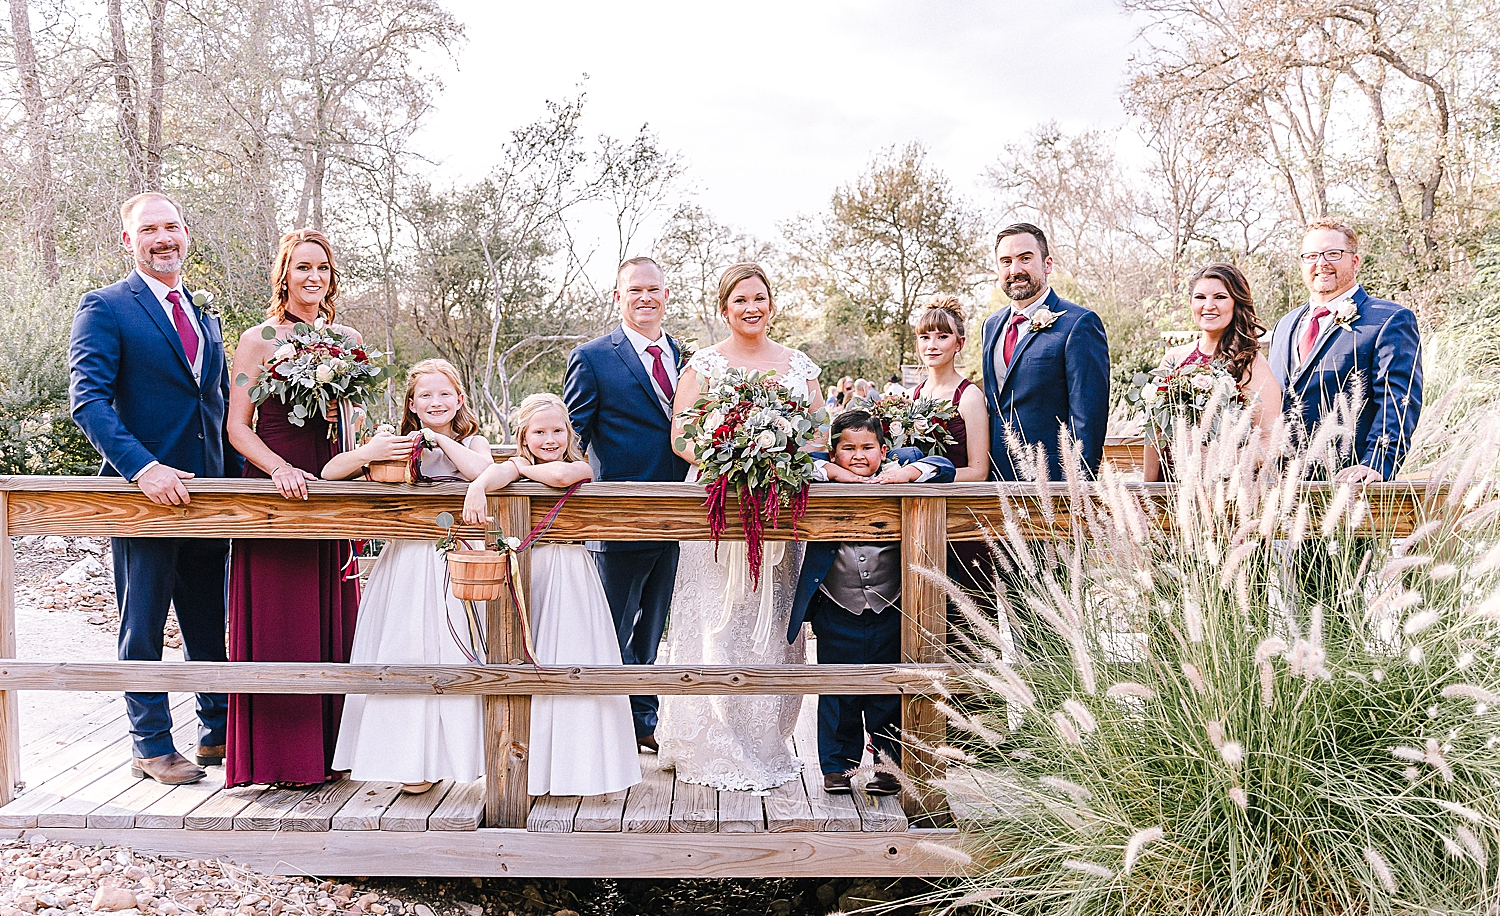 Geronimo-Oaks-Wedding-Venue-Seguin-Texas-Elegant-Navy-Burgundy-Wedding-Carly-Barton-Photography_0036.jpg